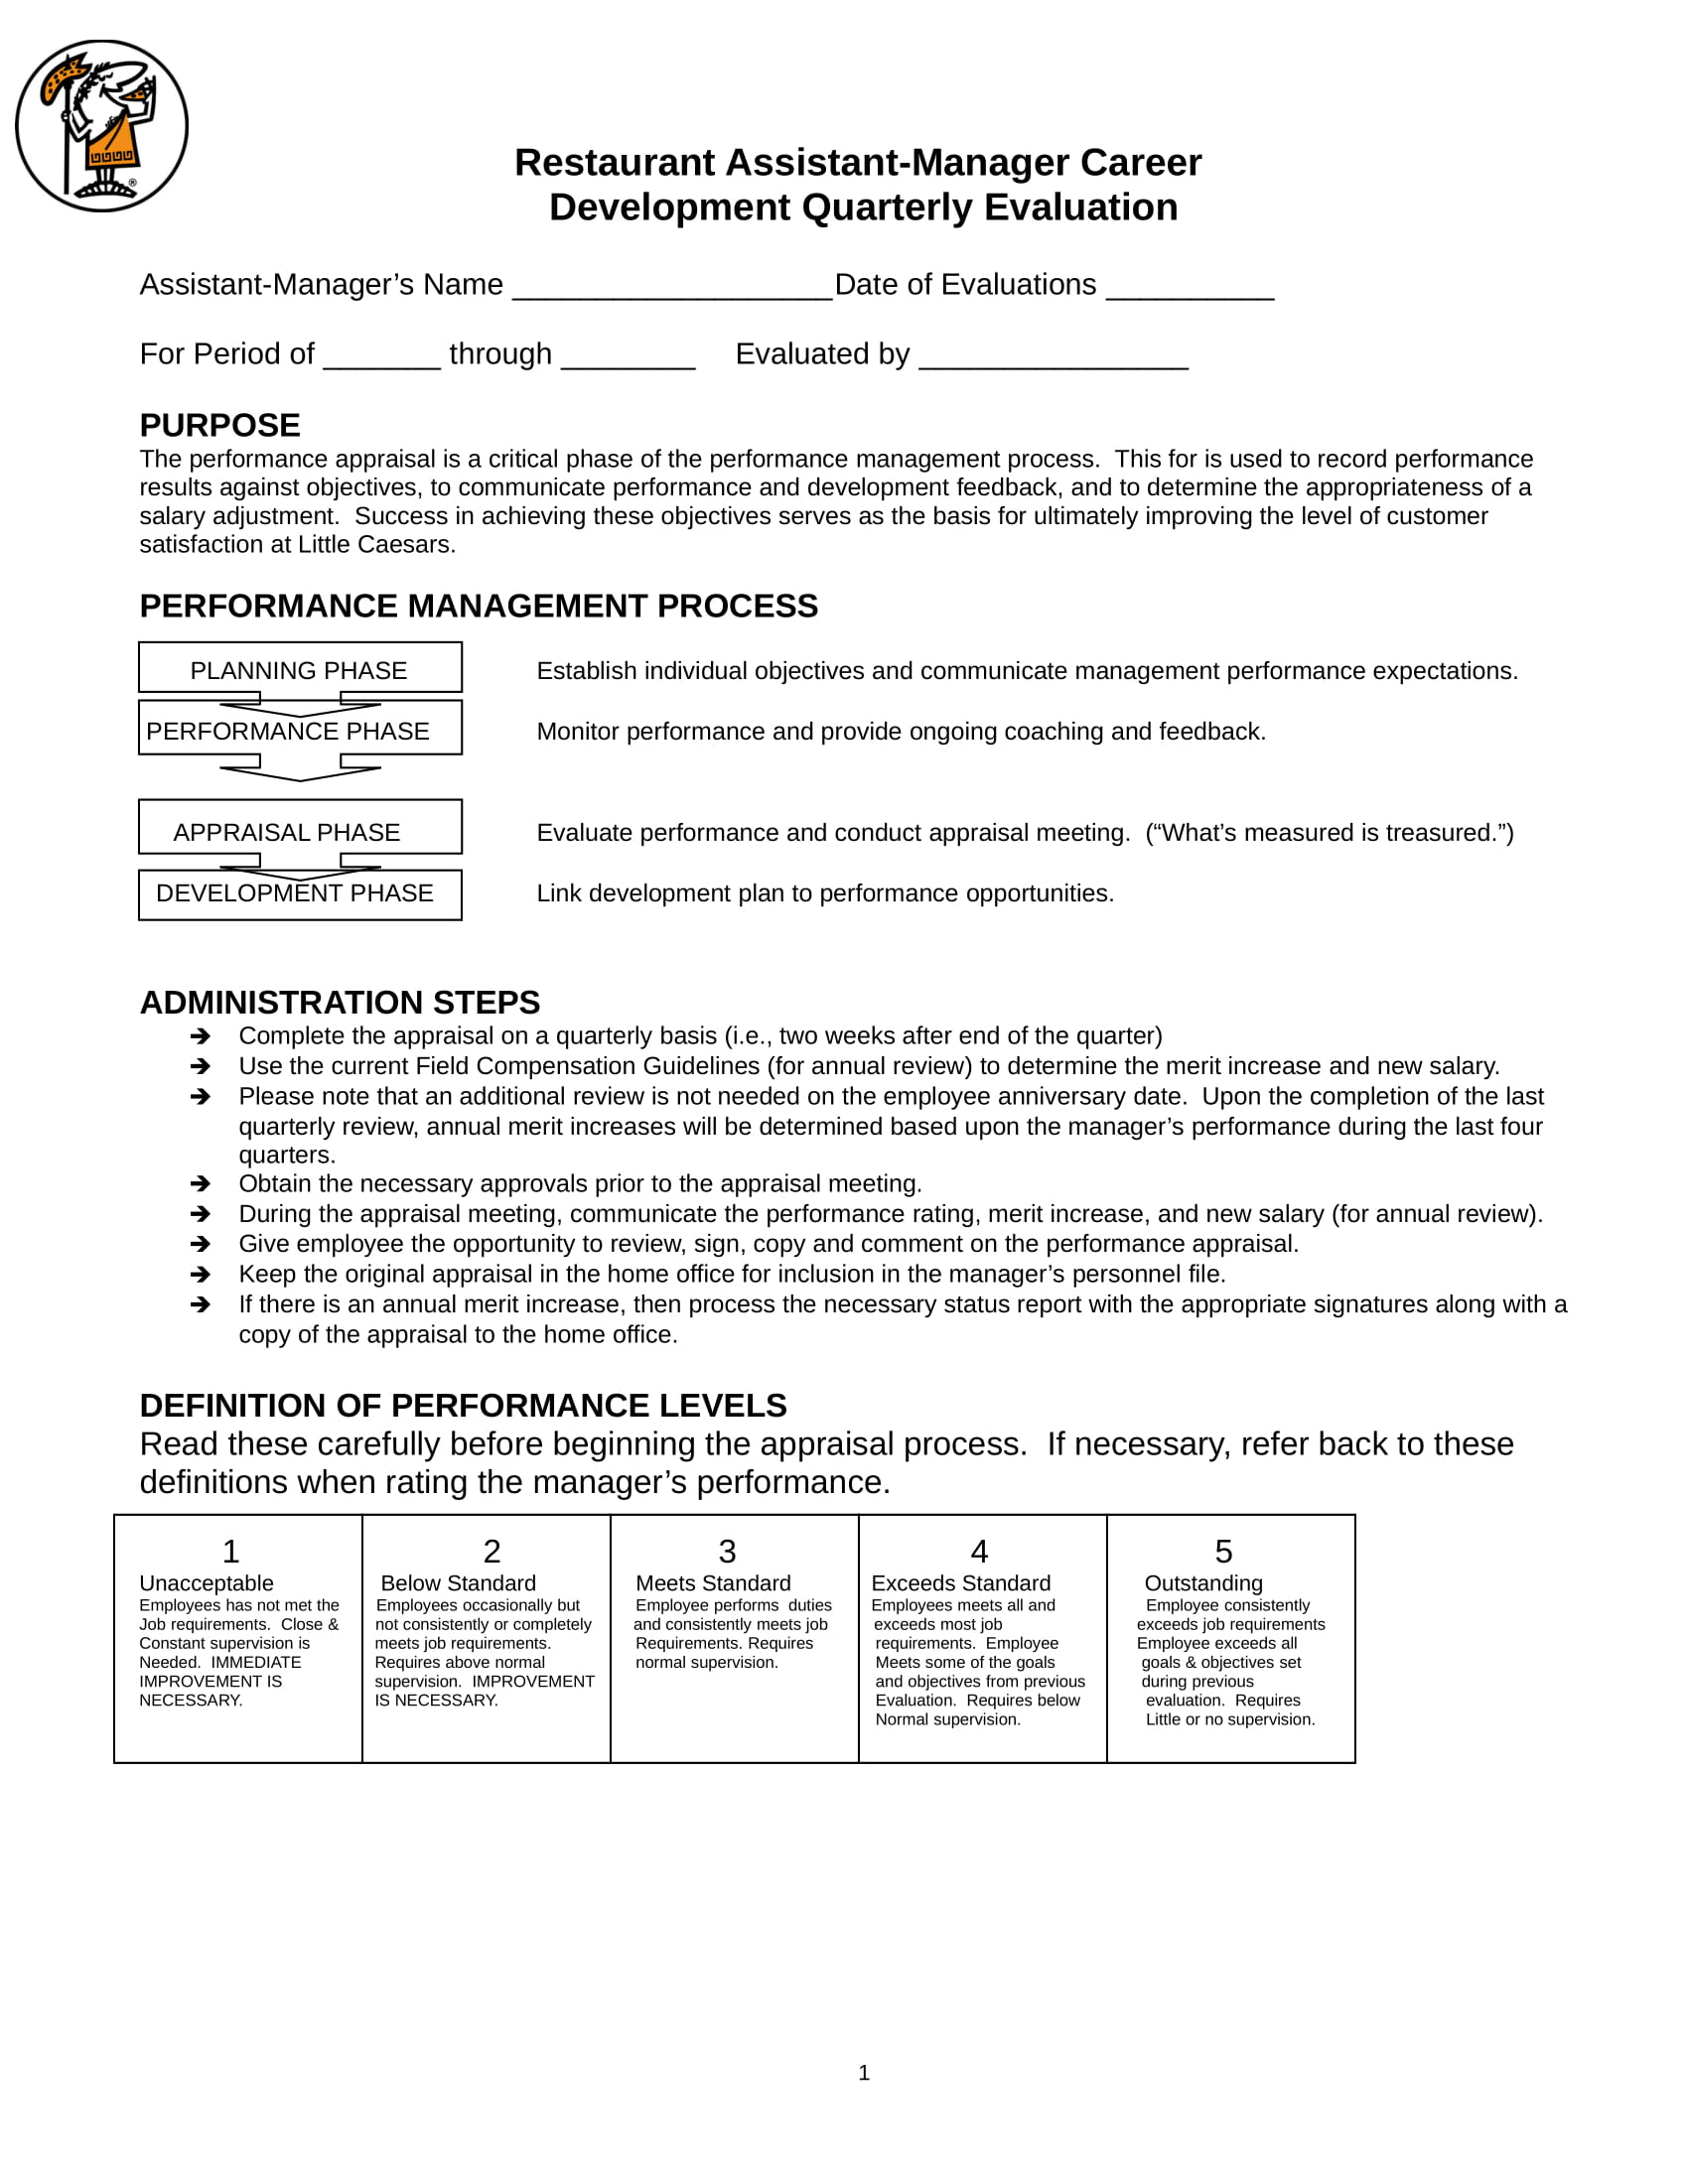 restaurant manager quarterly evaluation form 1